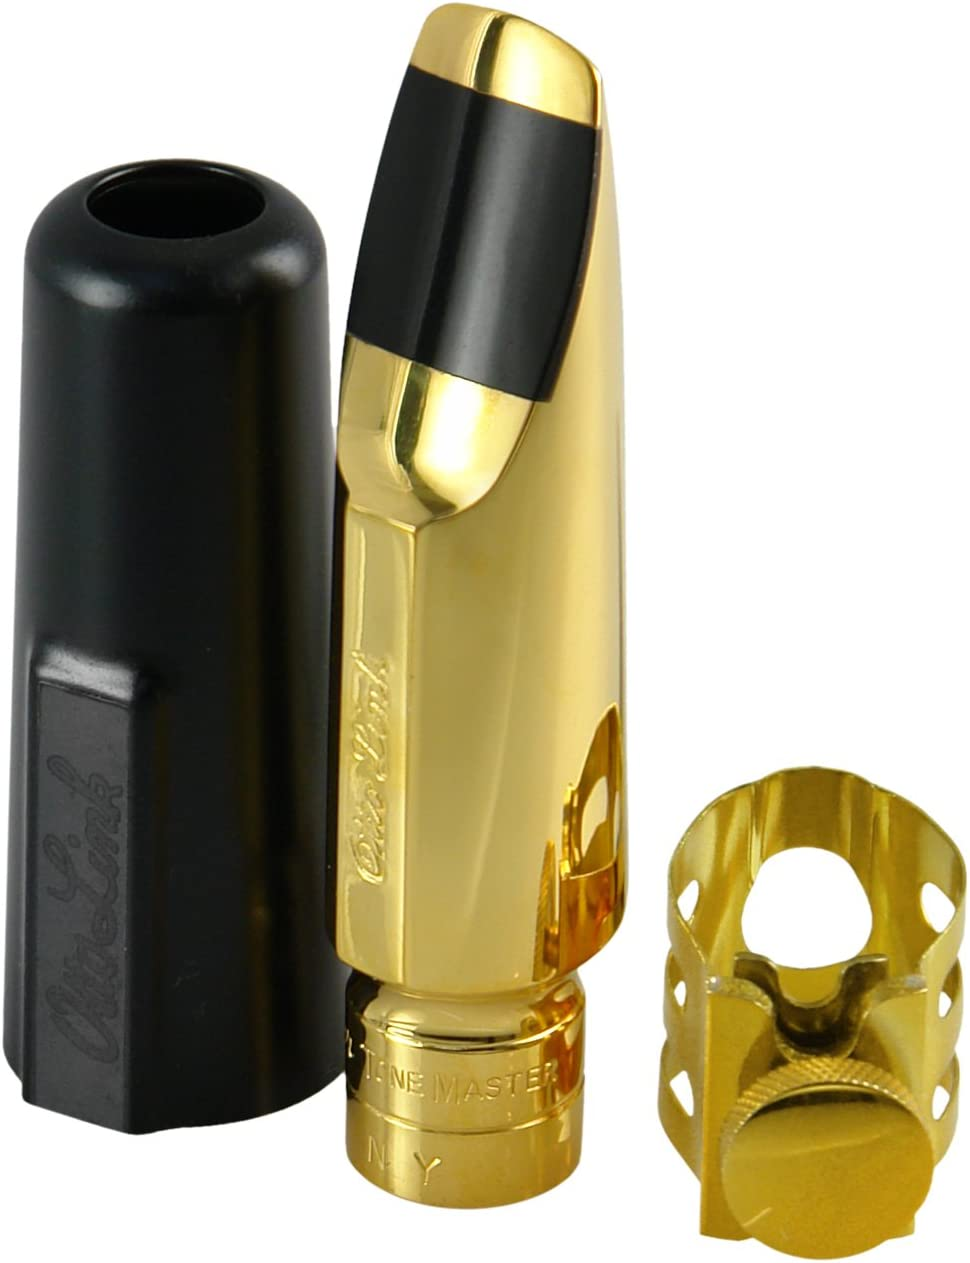 Ottolink OLMTSNY81 Metal New York Saxophone 8 Mouthpiece Tenor Super Outlet ☆ Free Shipping popular specialty store